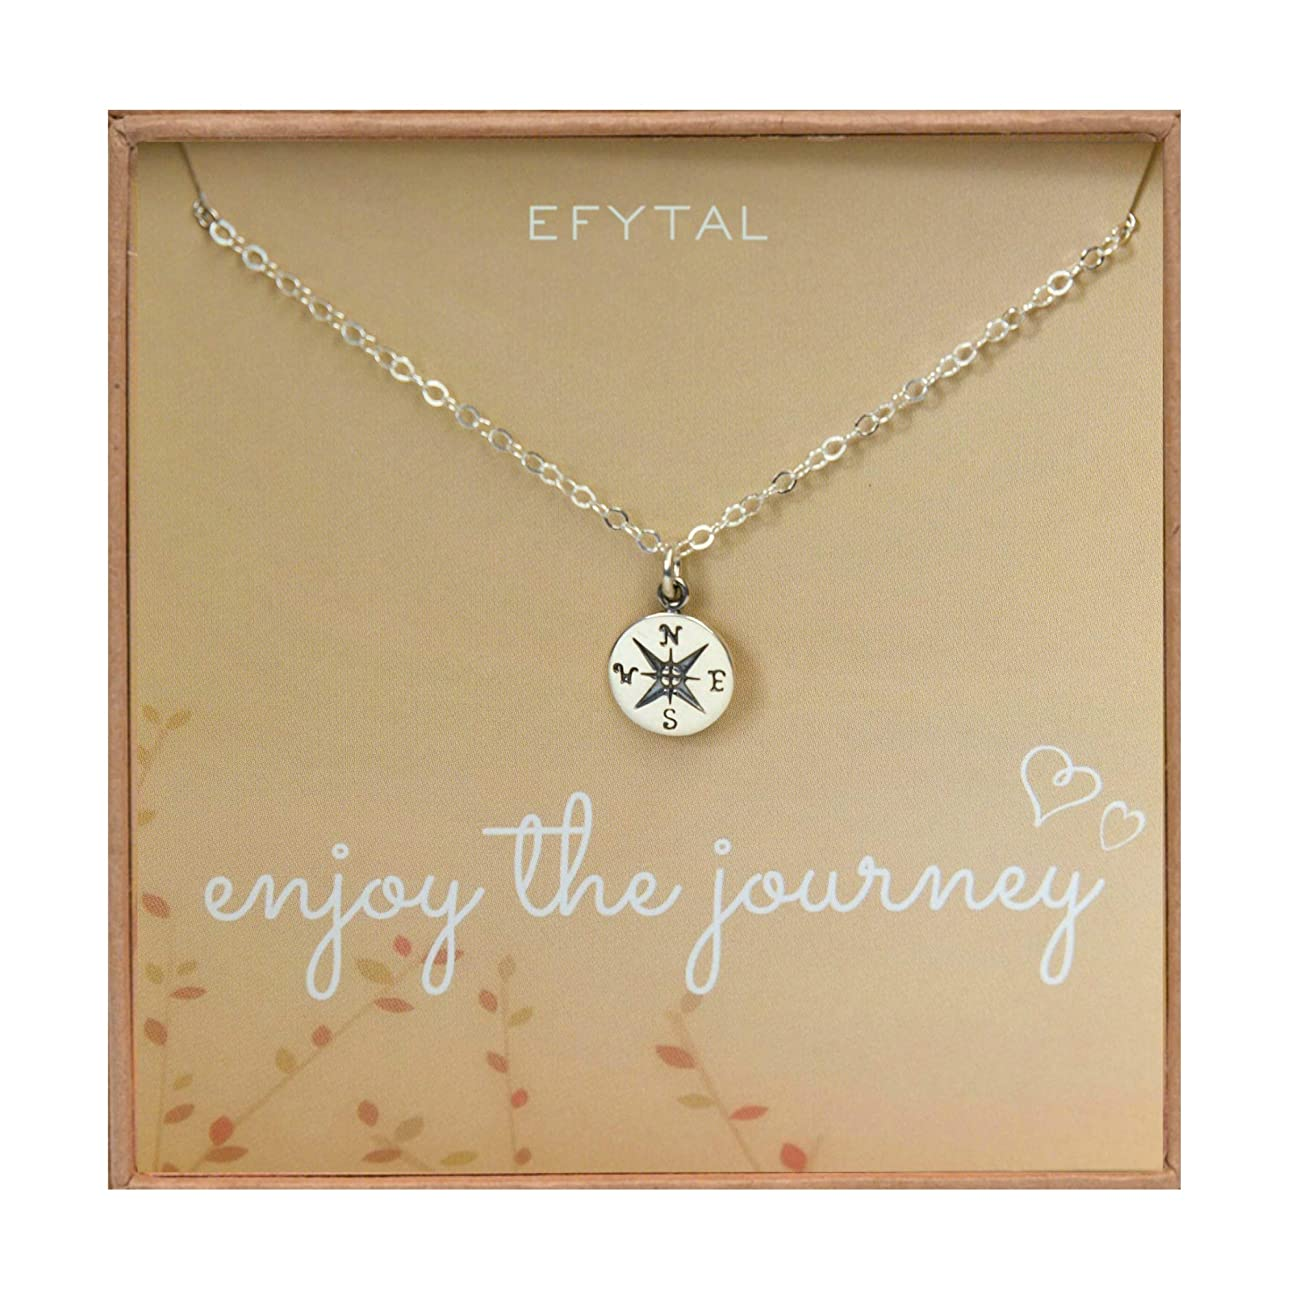 EFYTAL Graduation Gifts for Her, Sterling Silver Compass Necklace on Enjoy The Journey Card, New Grad Gift, Jewelry for Travel or Long Distance For Women